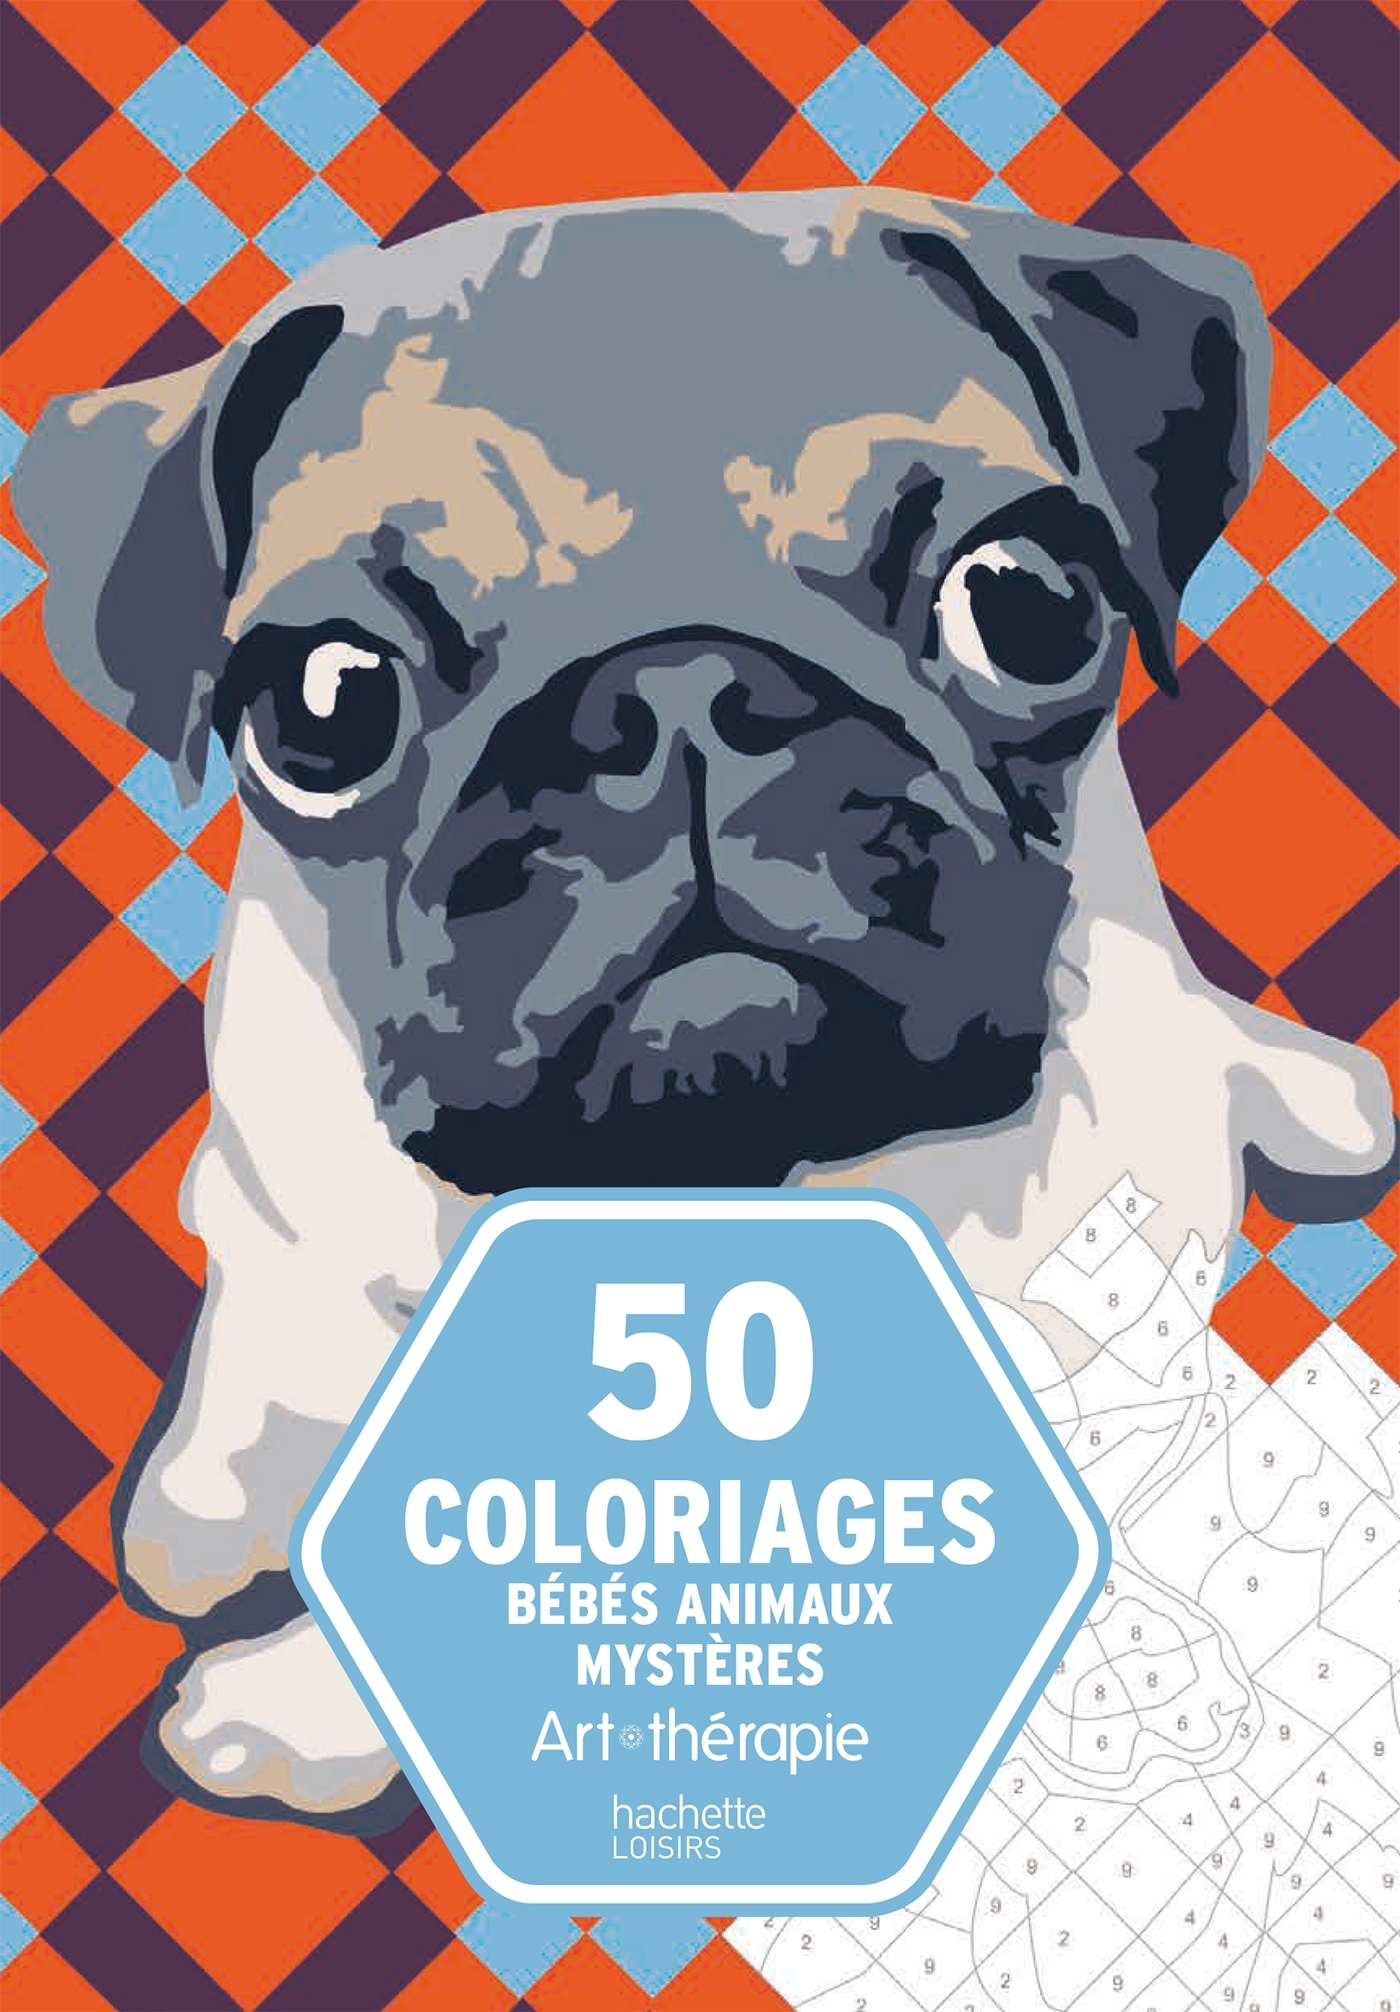 50 COLORIAGES BEBES ANIMAUX MYSTERES